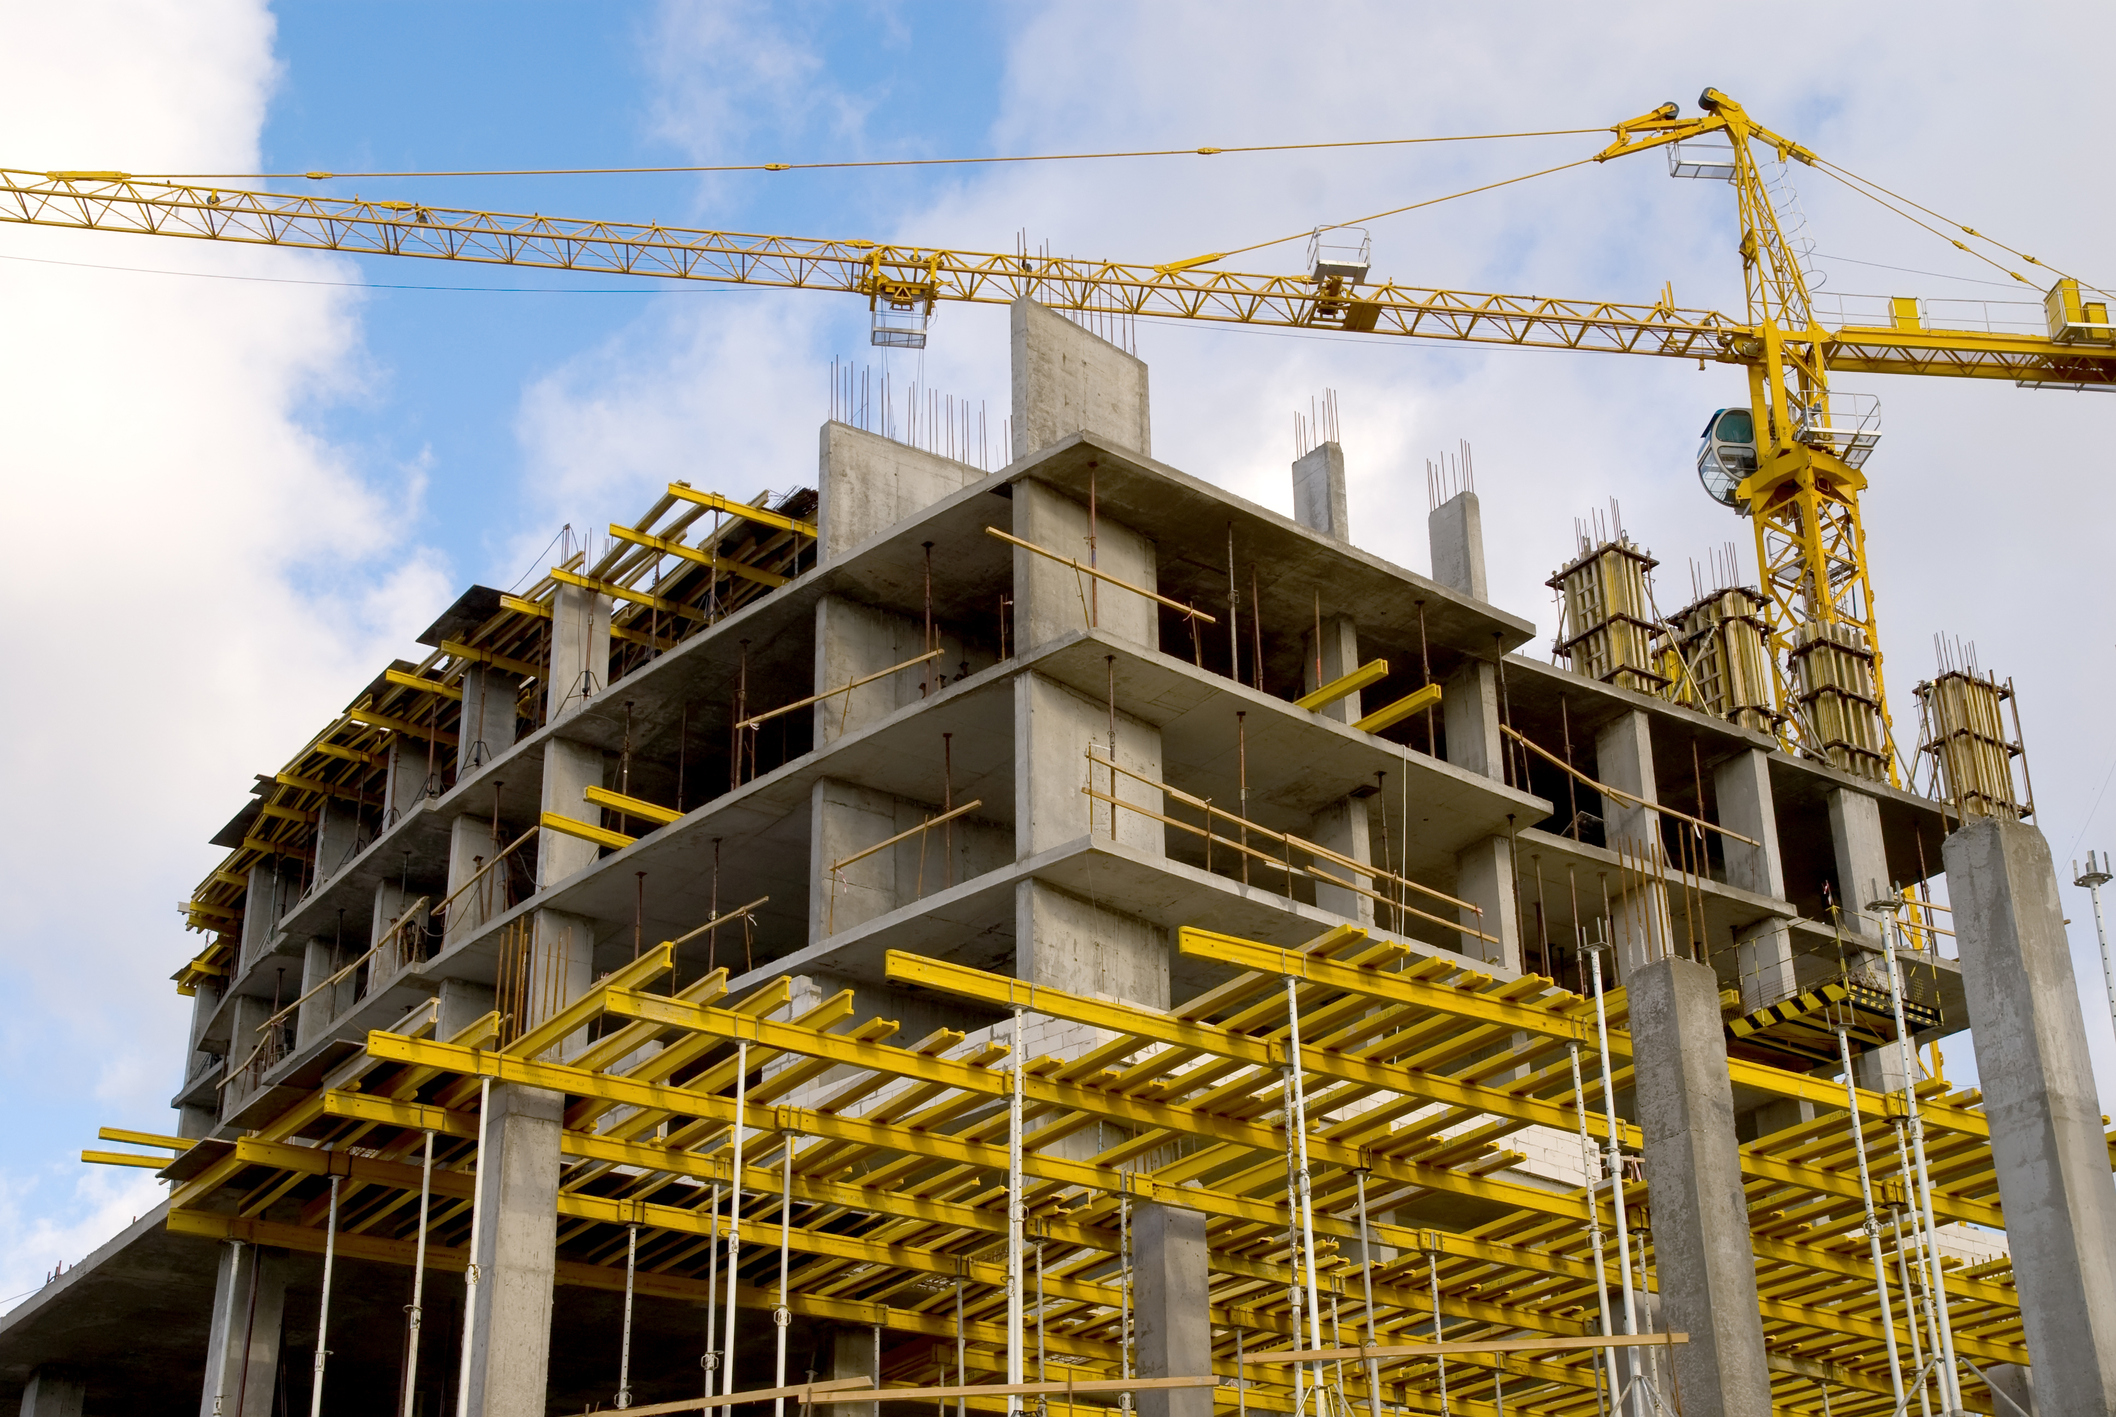 Like a Good Building, Construction Law is Built on a Solid Foundation of Legal Experience   Learn how the Attorneys of Erickson |Sederstrom's Construction Law Practice Can Assist You Today